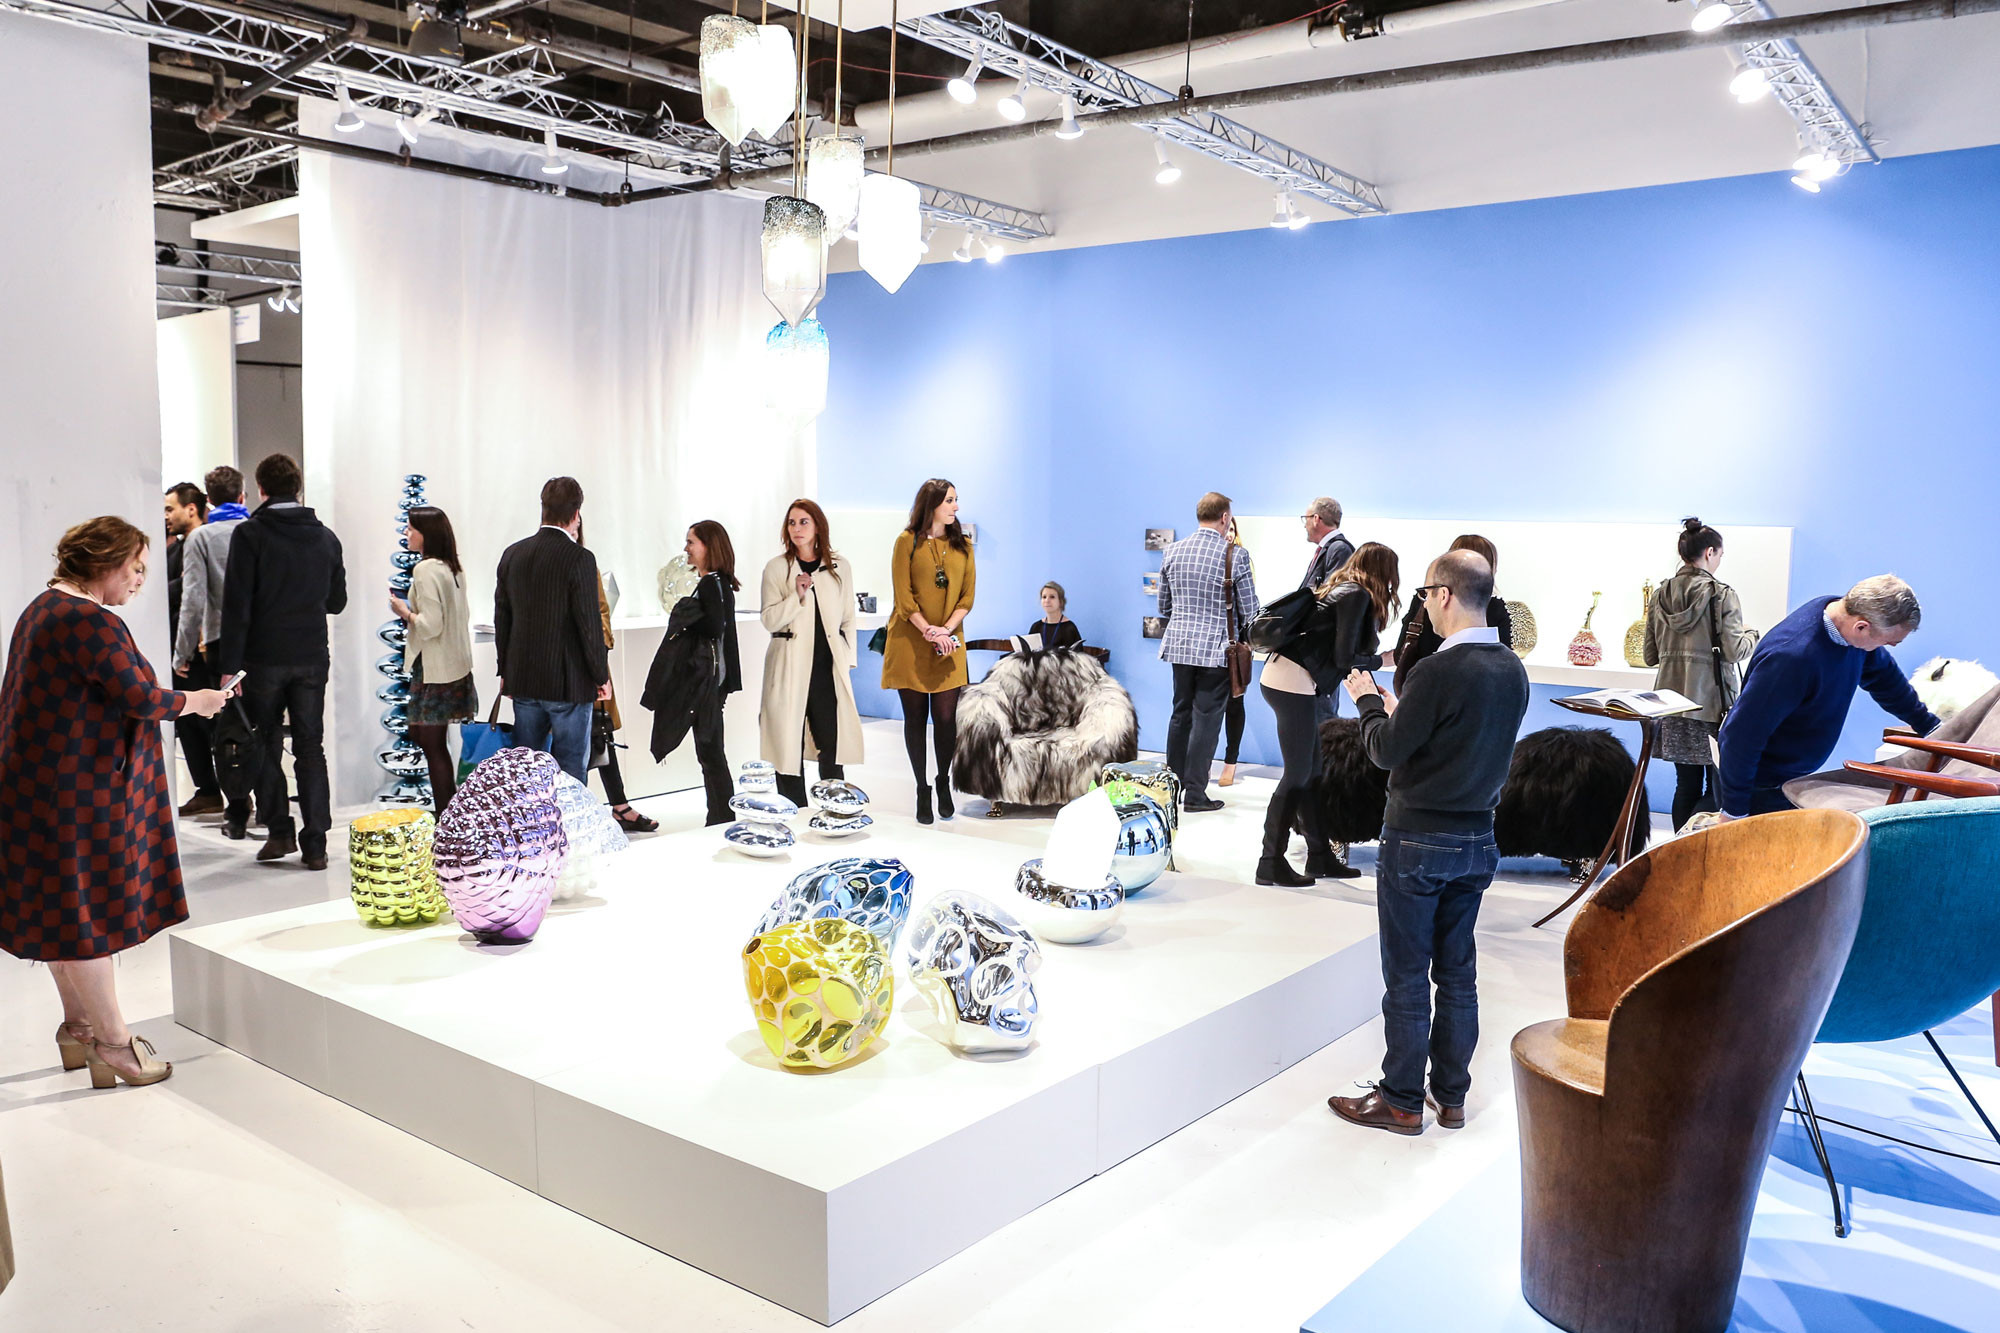 Three of the Best Showcases from New York's Collective Design Fair 2017 collective design fair 2017 Three of the New York's Collective Design Fair 2017 Best Showcases Three of the Best Showcases from New Yorks Collective Design Fair 2017